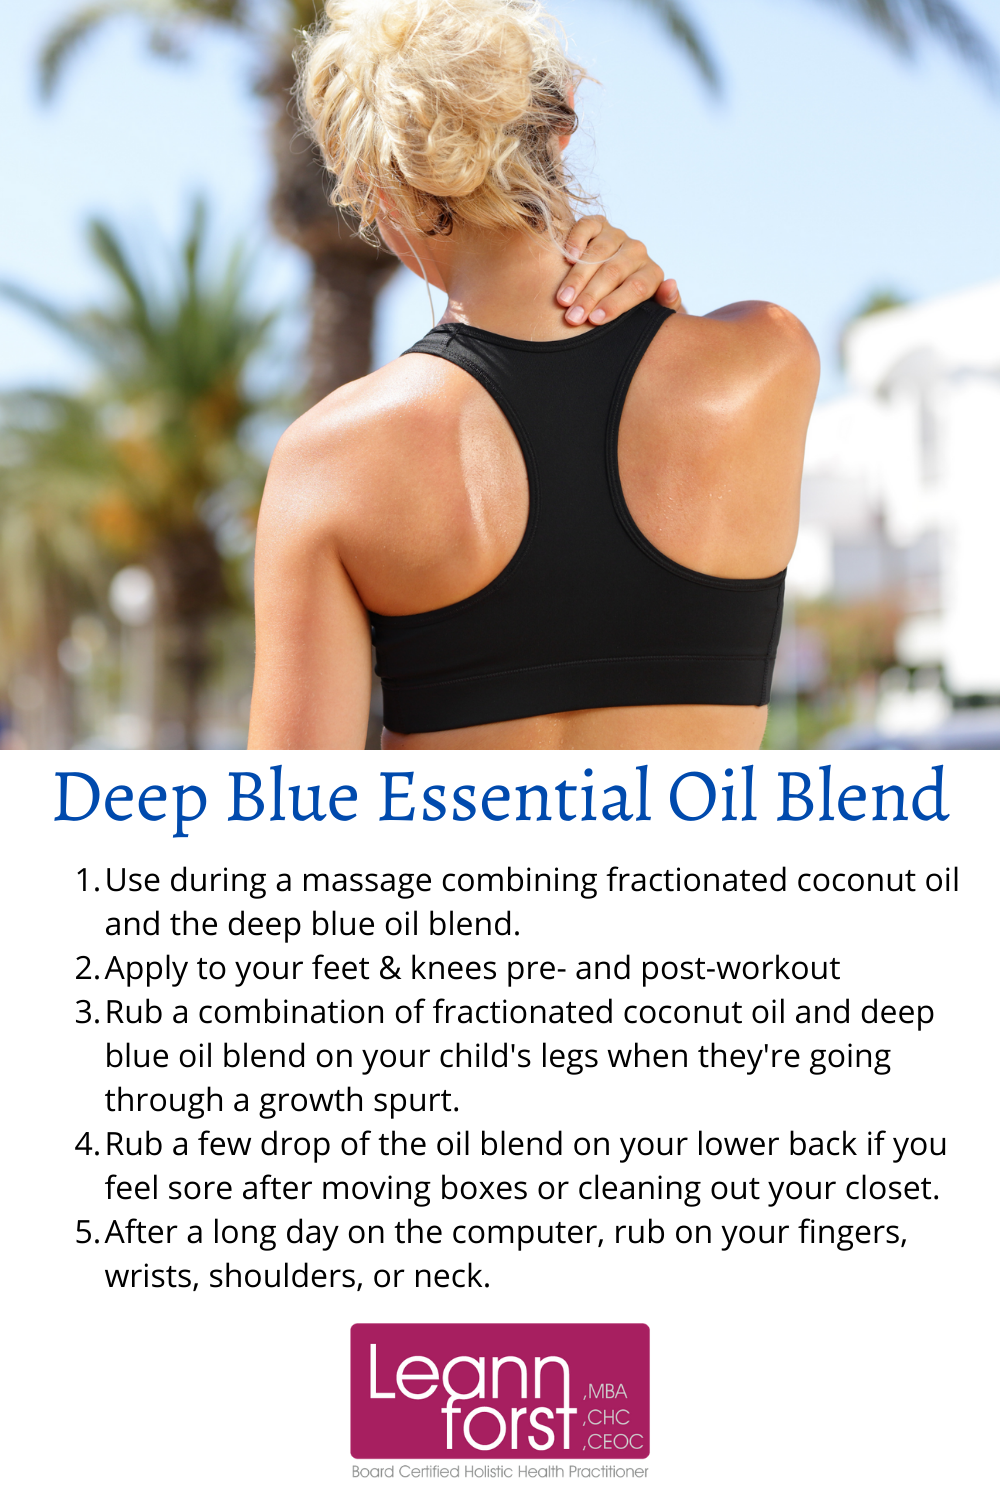 Deep Blue Essential Oil Blend | LeannForst.com